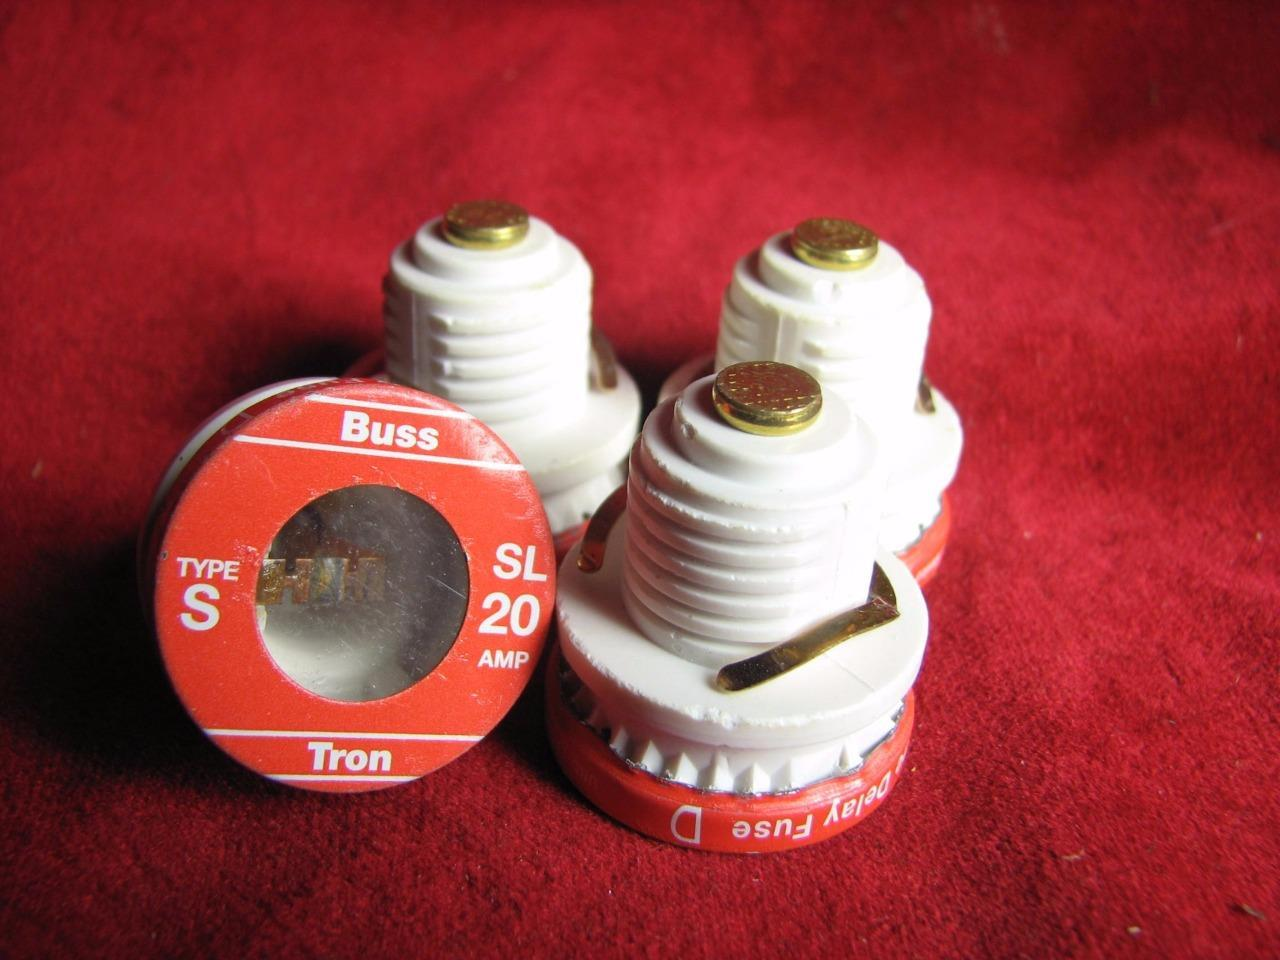 4 Buss Screw In Time Delay Fuses Type Sl 20 Amp S 30 Fuse Box